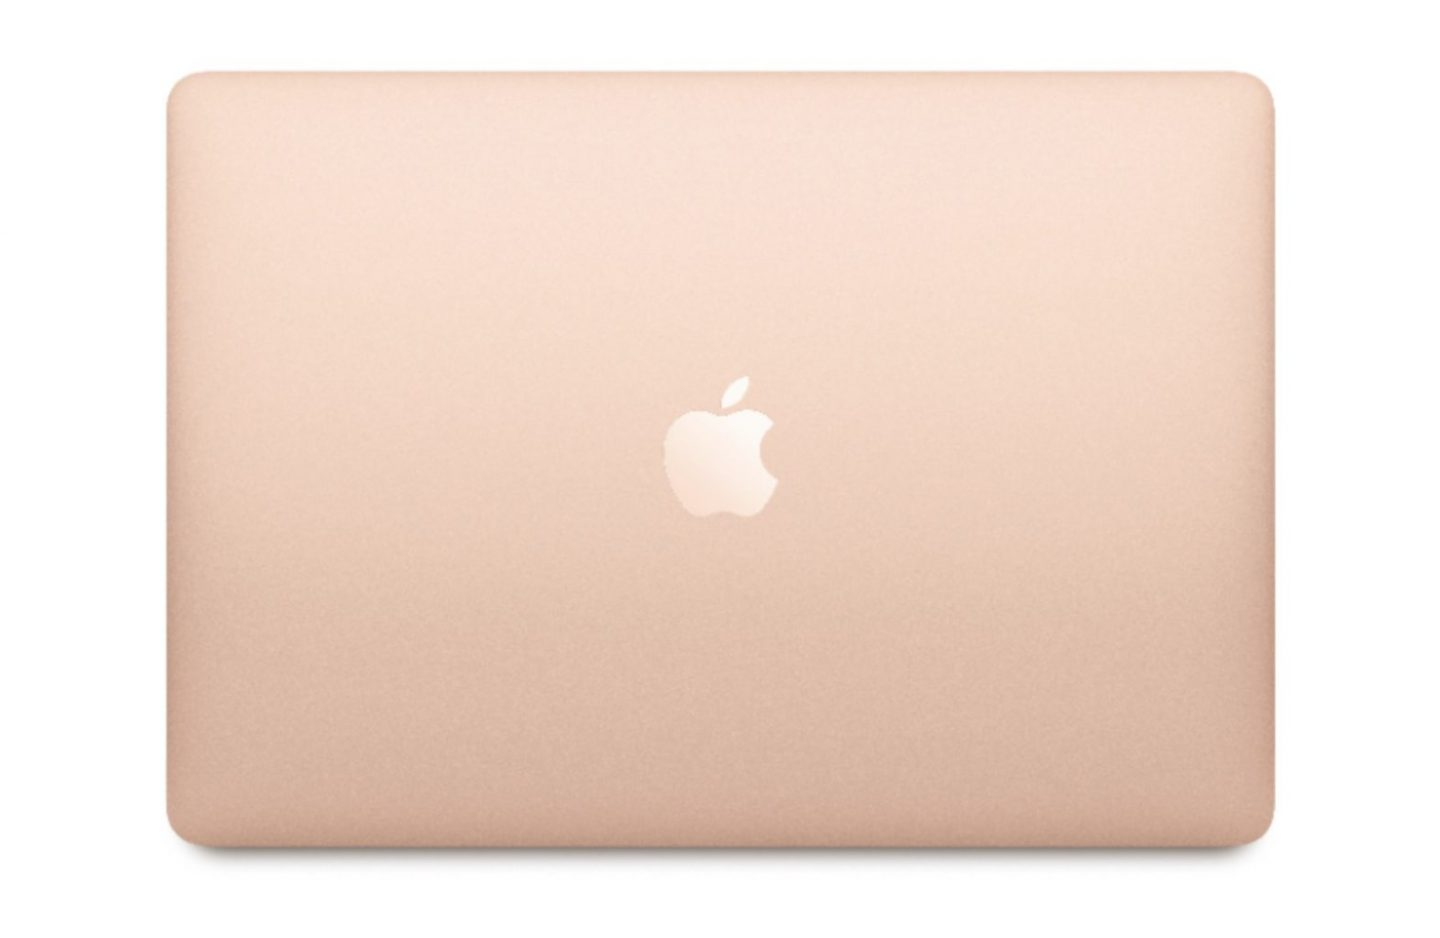 Luxury gifts that every girl wants: Gold Apple MacBook Air